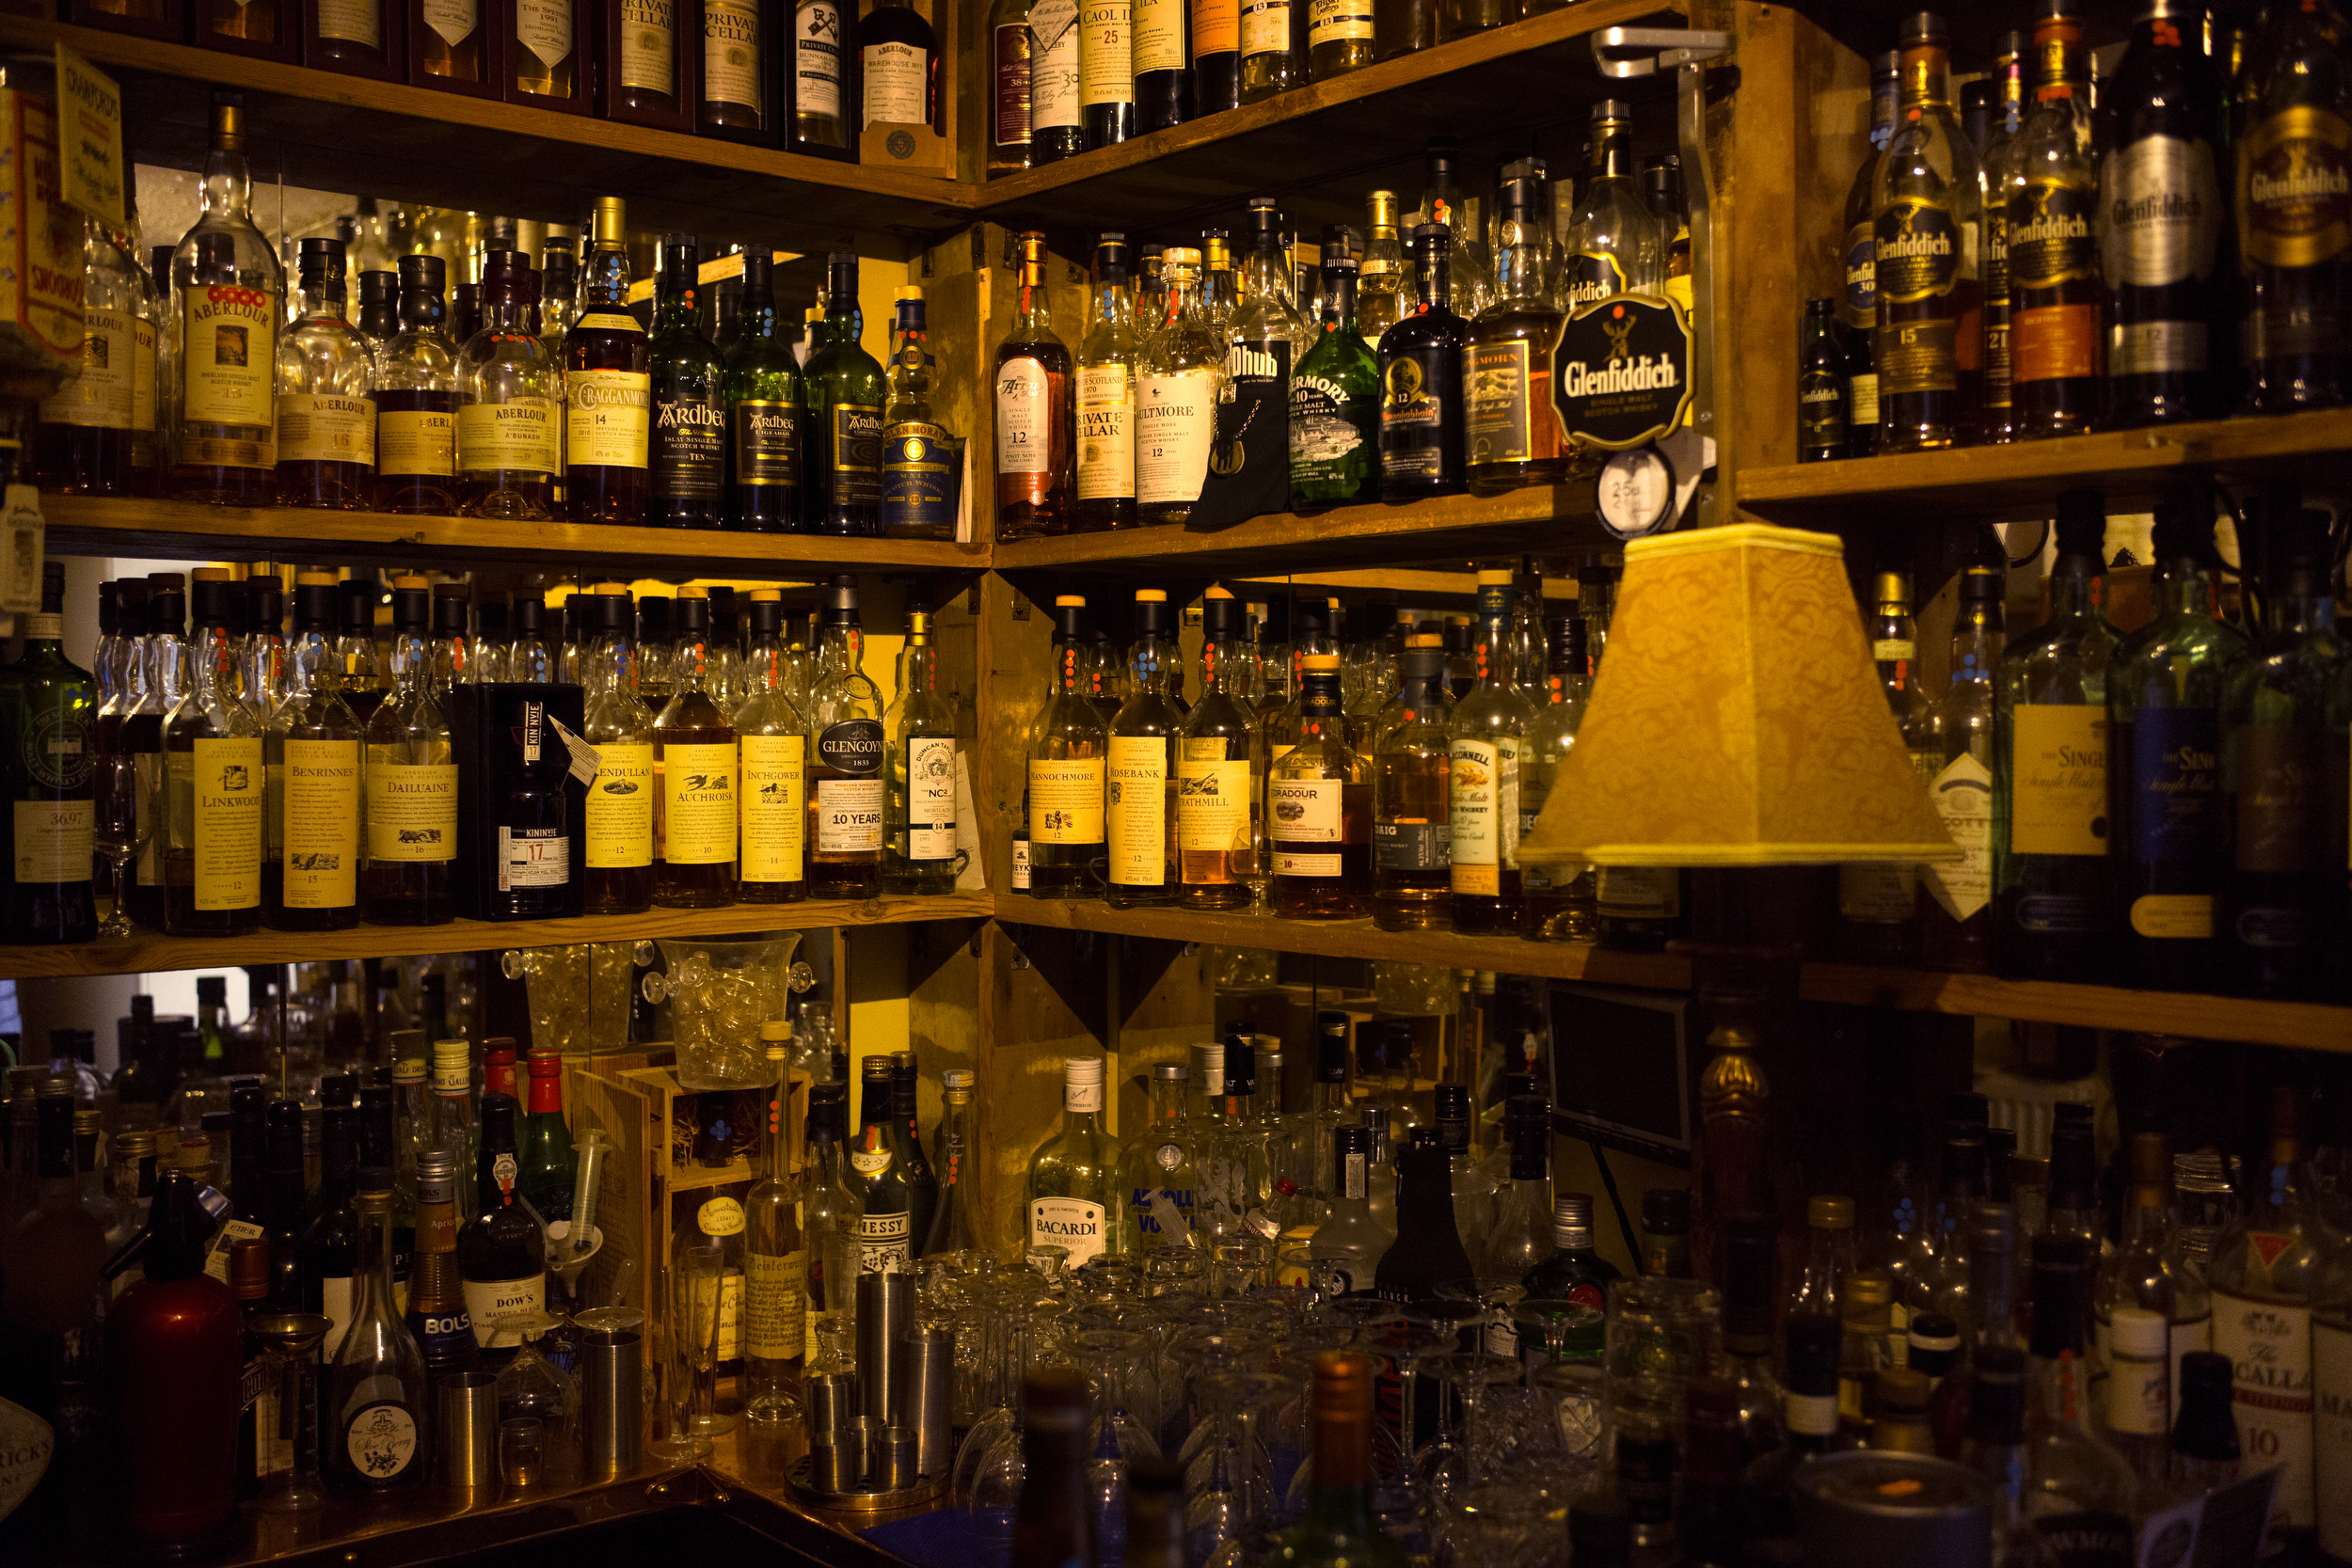 The whisky selection at the Tannochabrae Guest House in Dufftown.